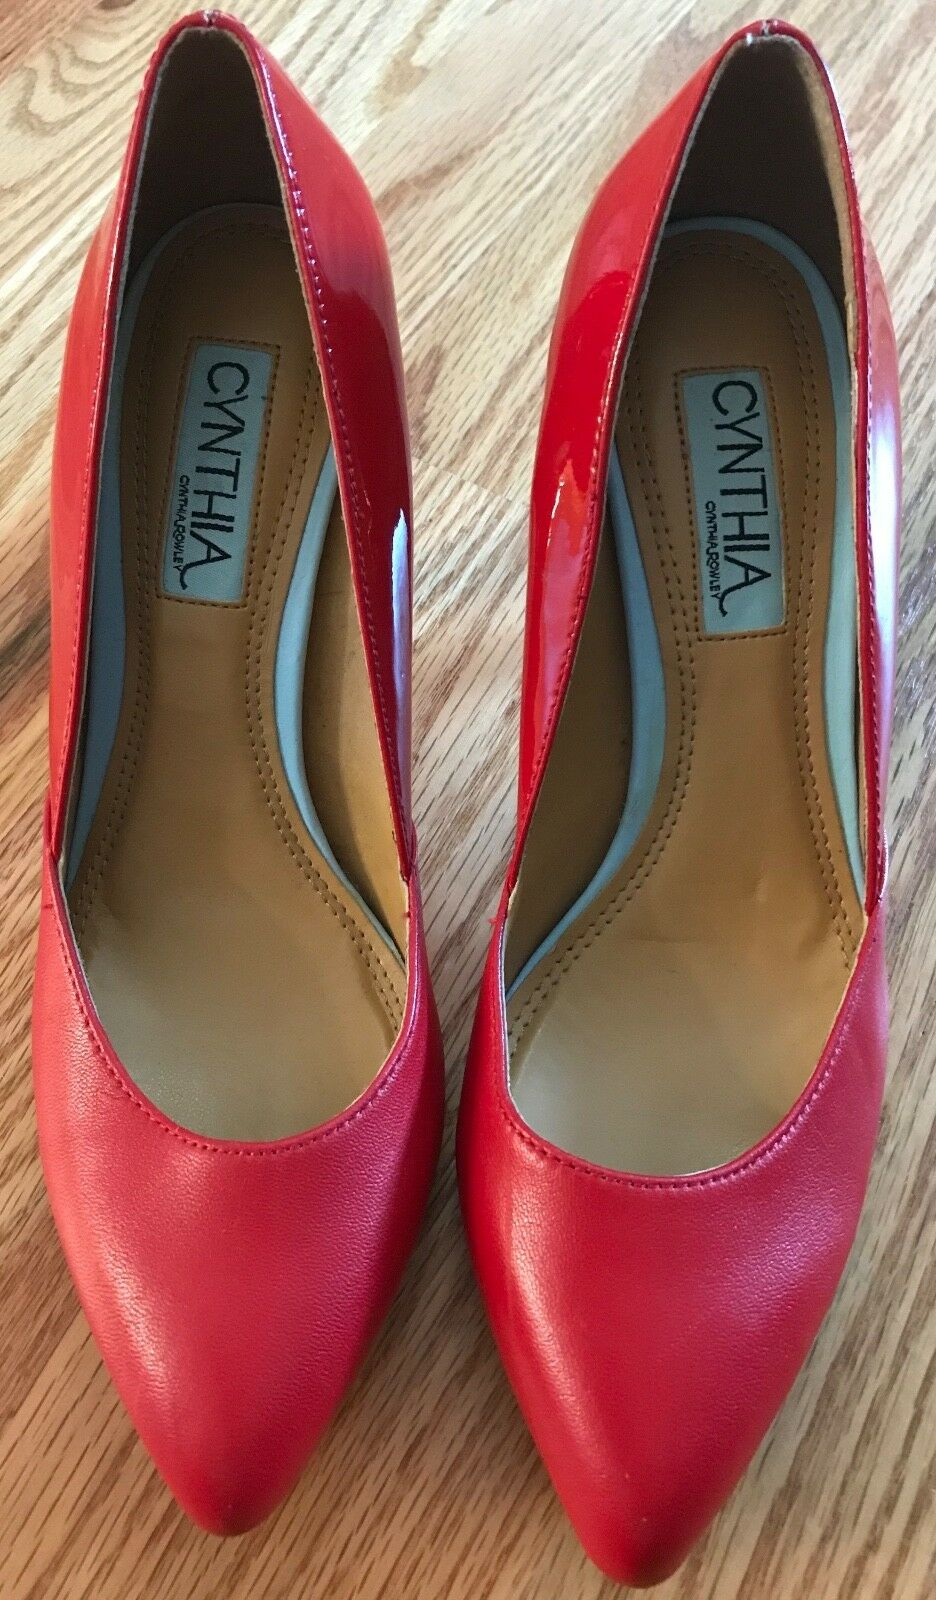 Women's Shoes Cynthia Rowley ASPEN Classic Pumps Heels Leather Red